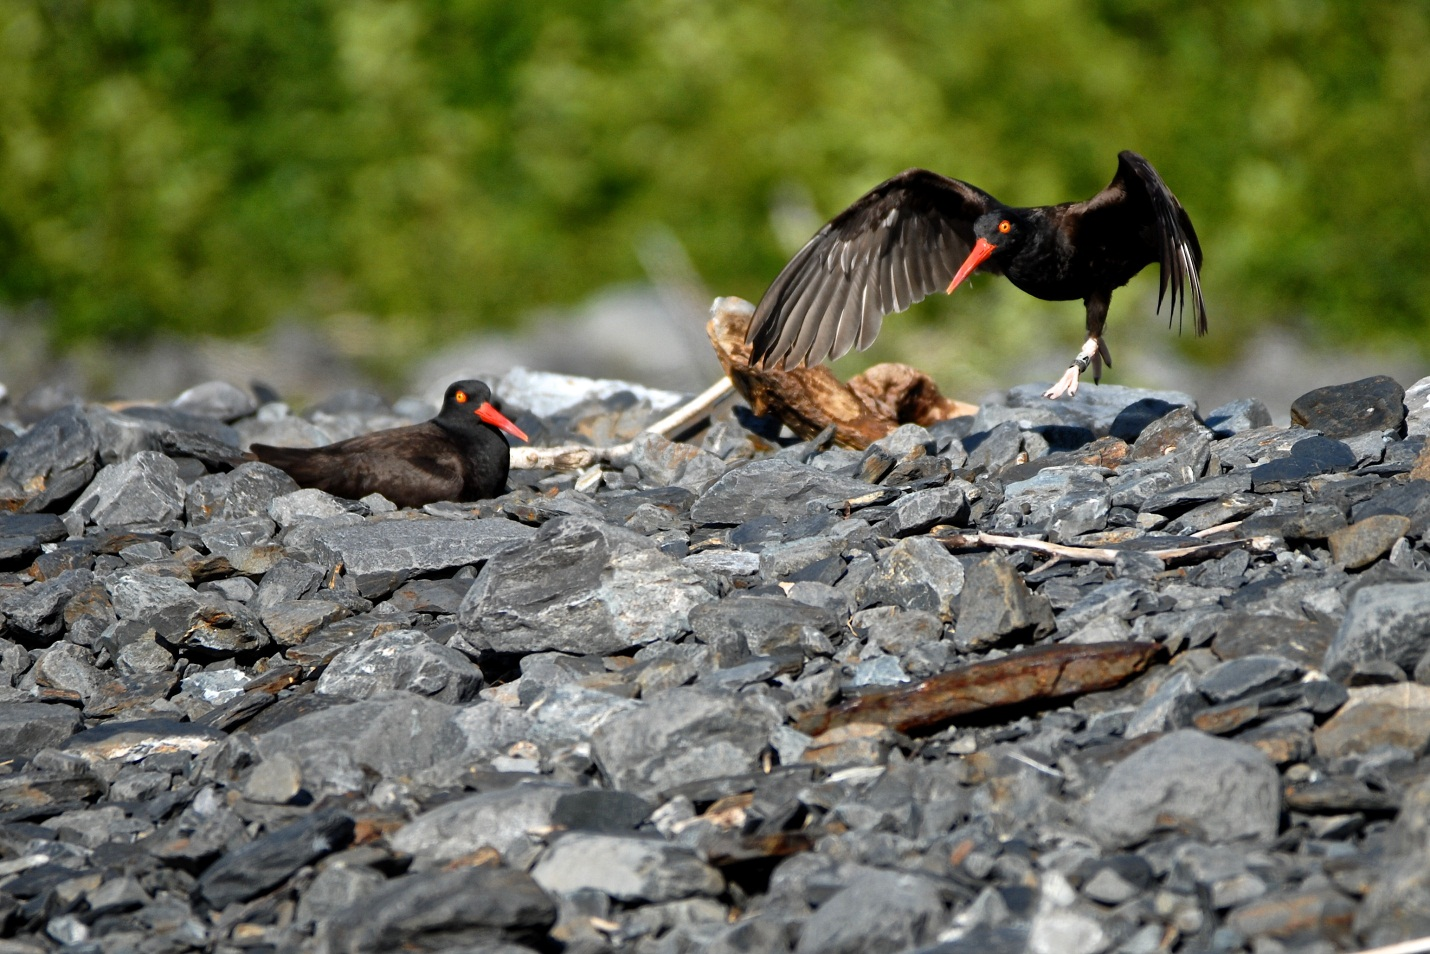 Two black oystercatchers are pictured. One is sitting on its nest. The second has its wings spread for take-off.